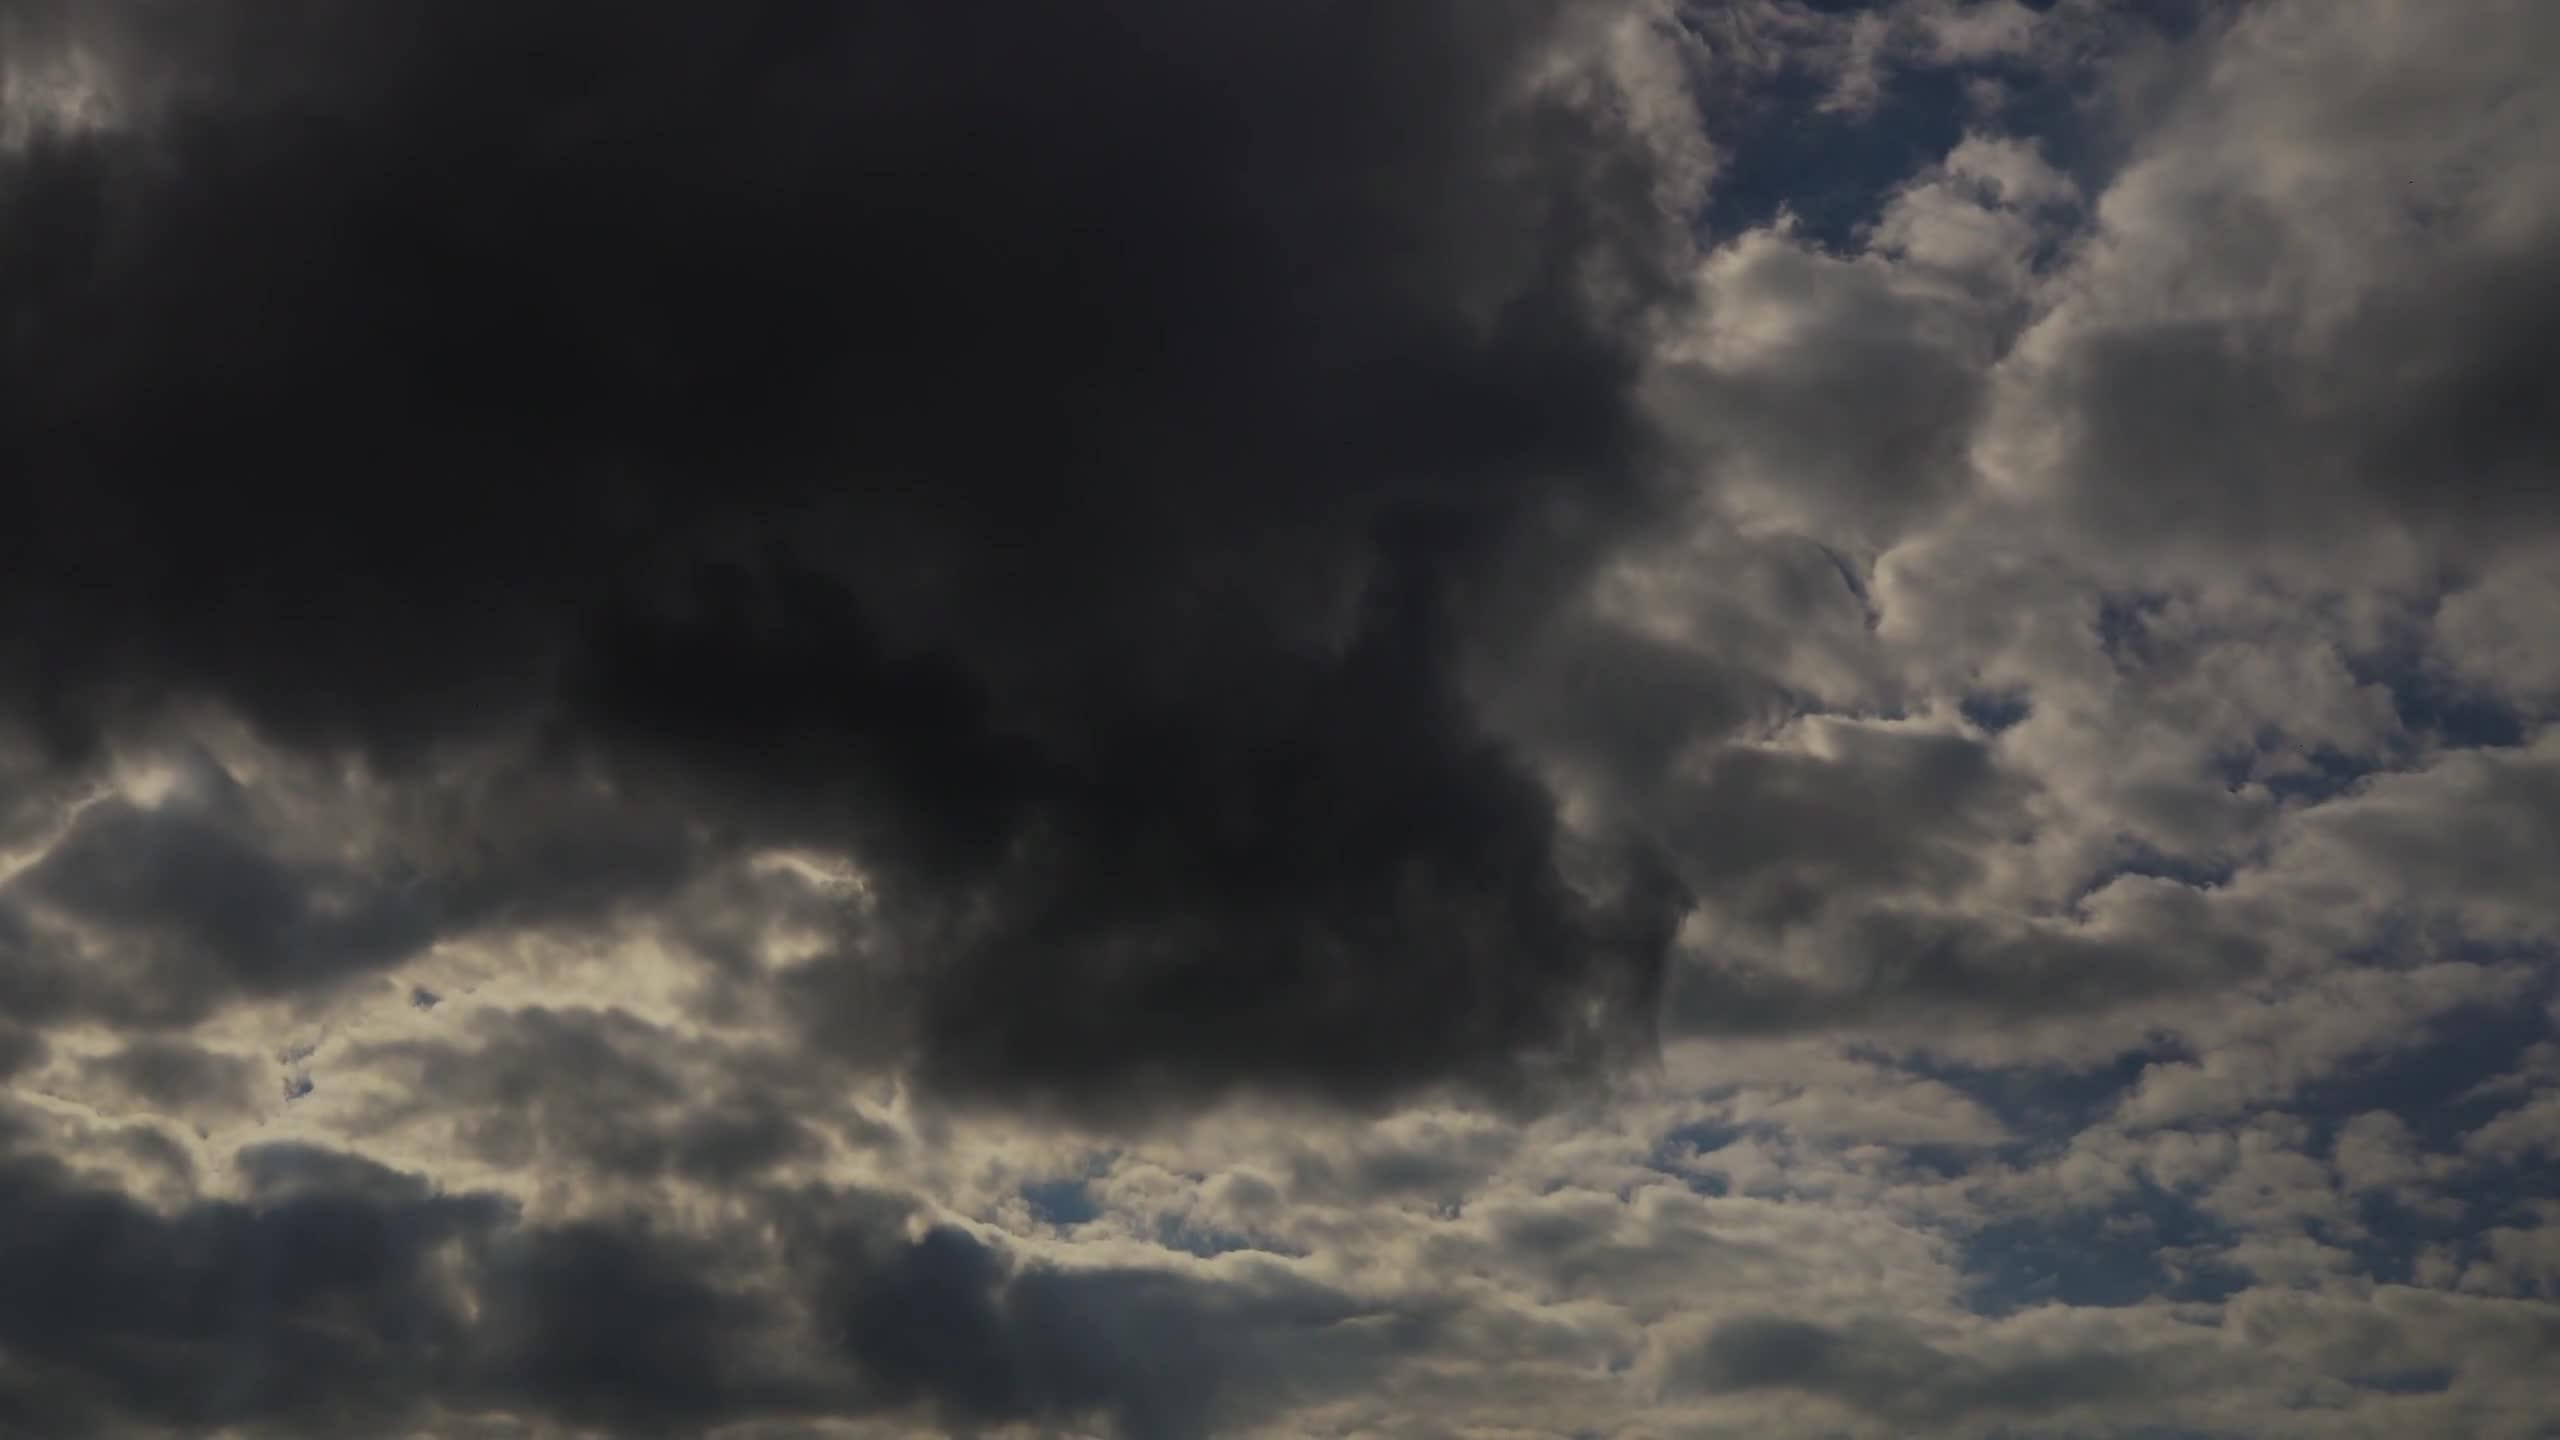 Time lapse clouds sky atmosphere dark clouds